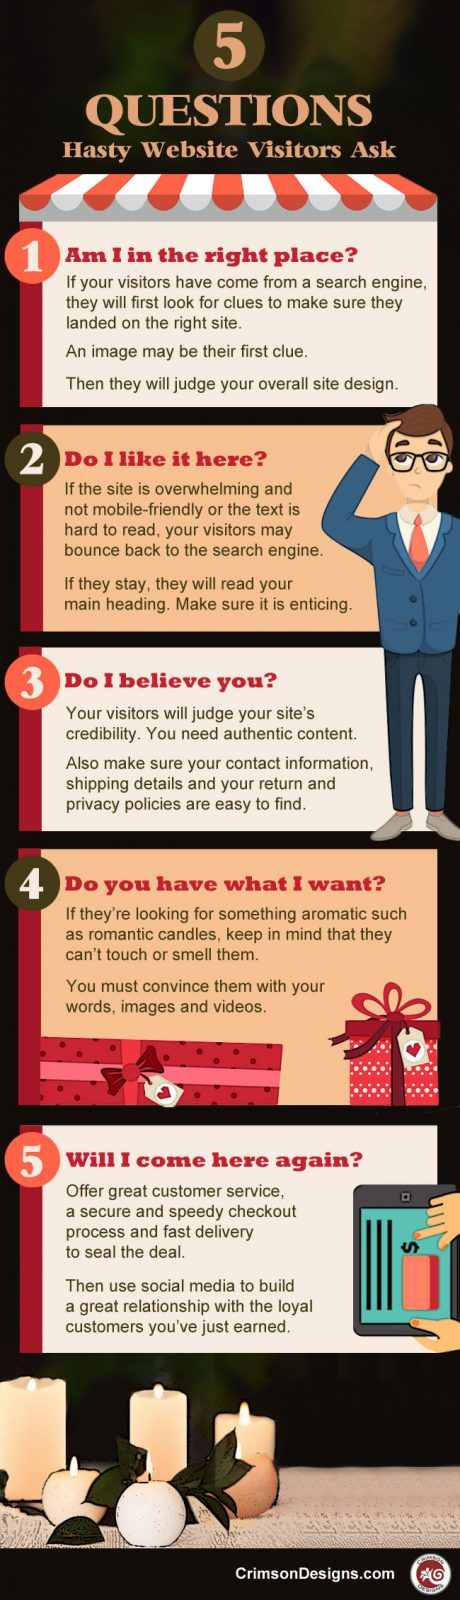 5 Questions Hasty Website Visitors Ask - Infographic